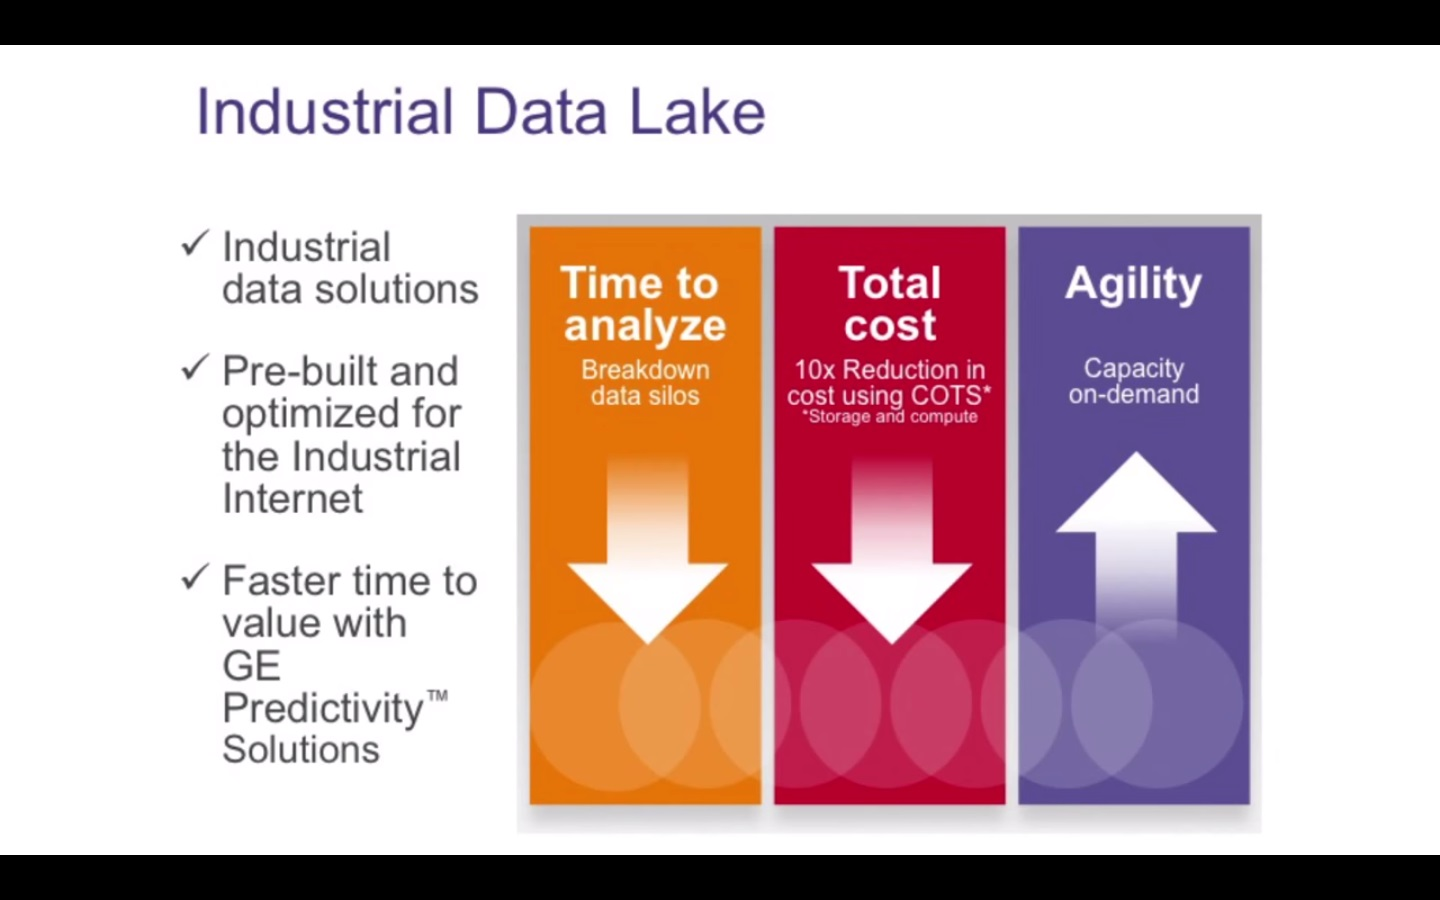 The Industrial Data Lake